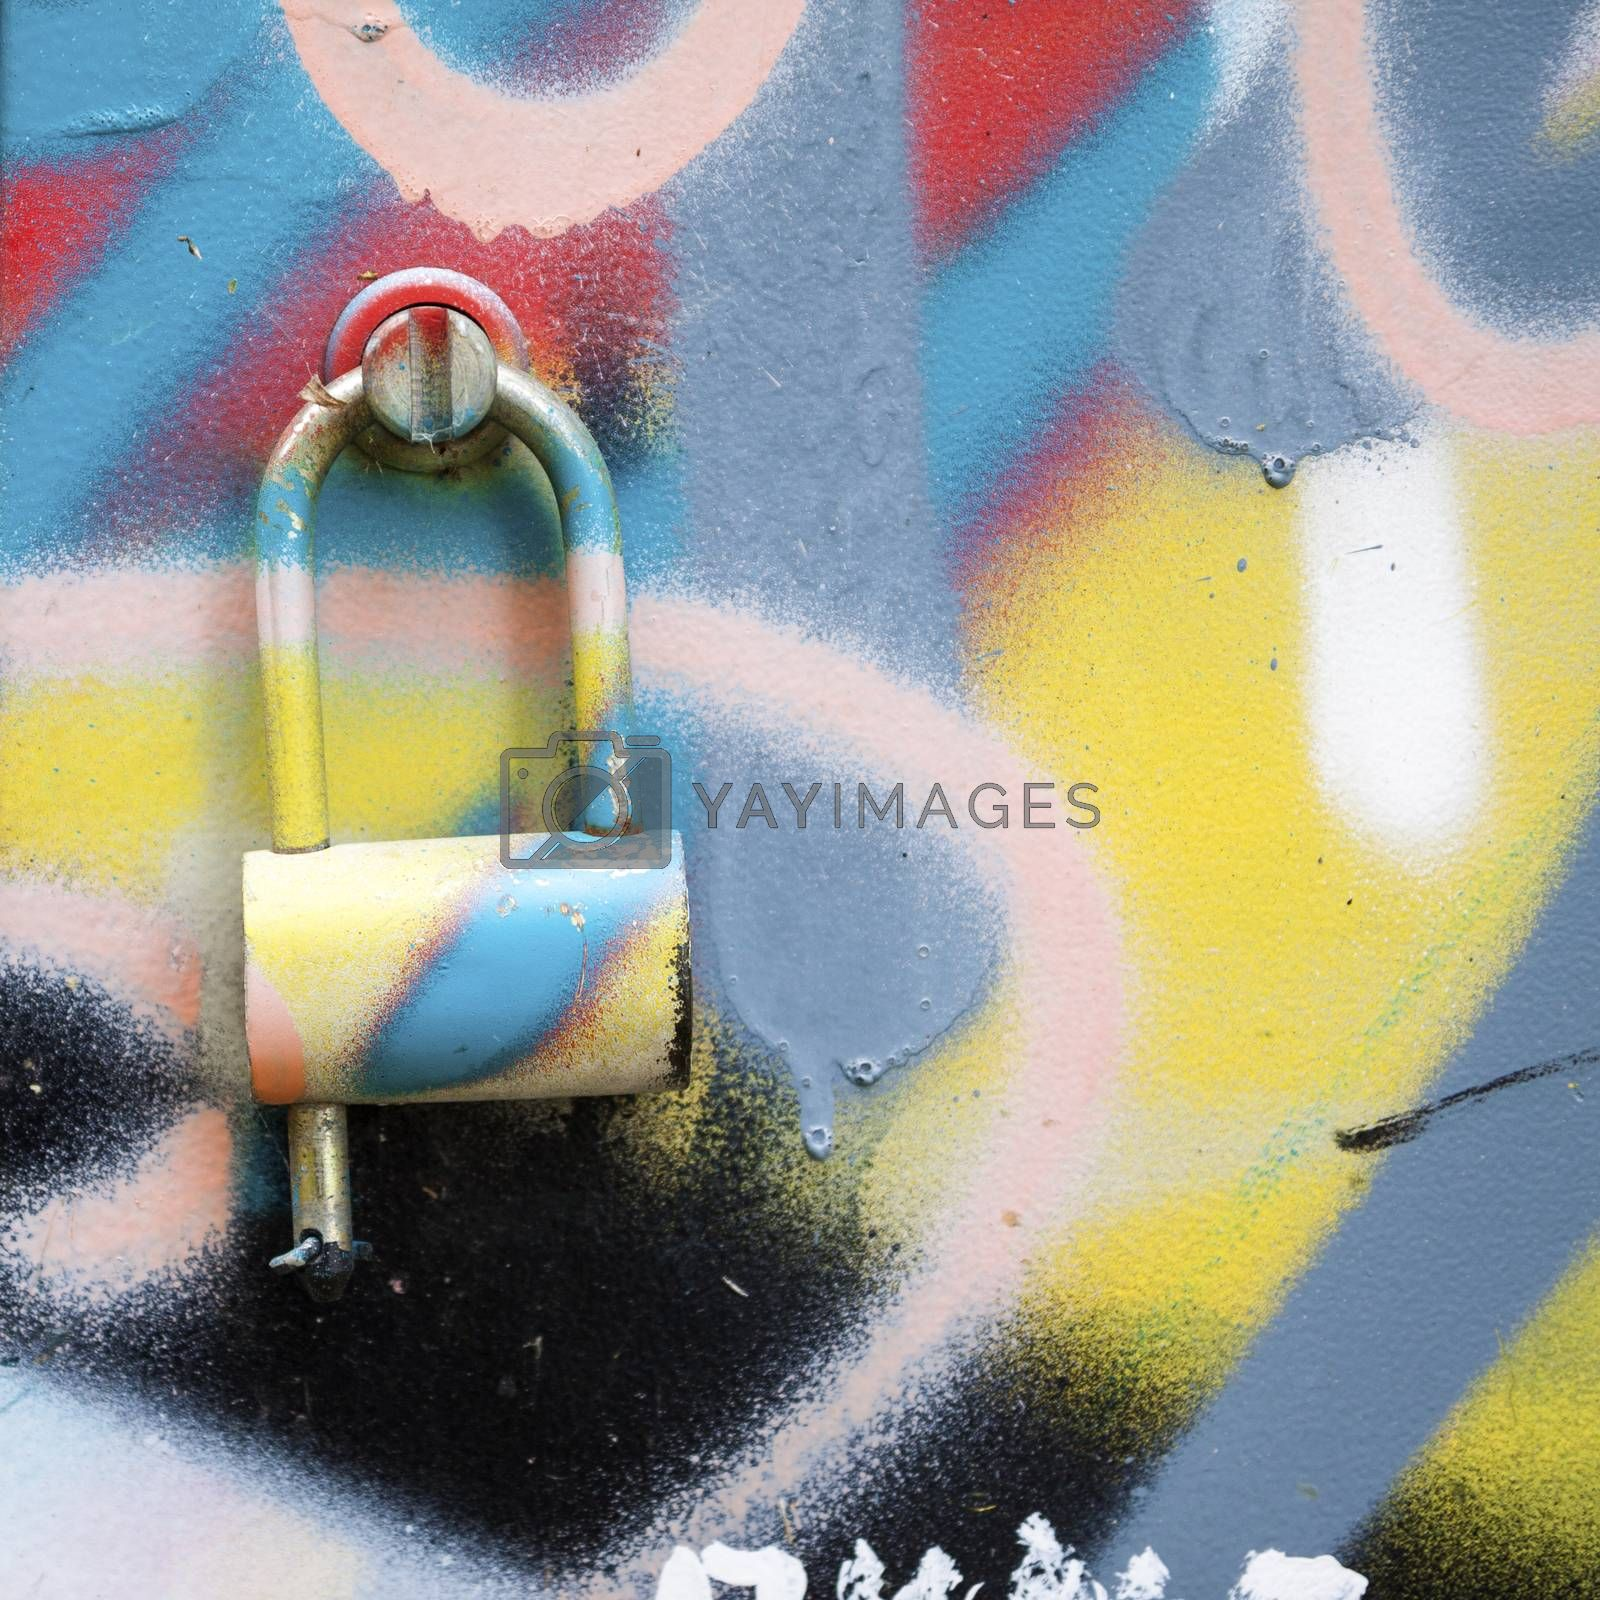 Colorful background of spray painted wall with metal lock